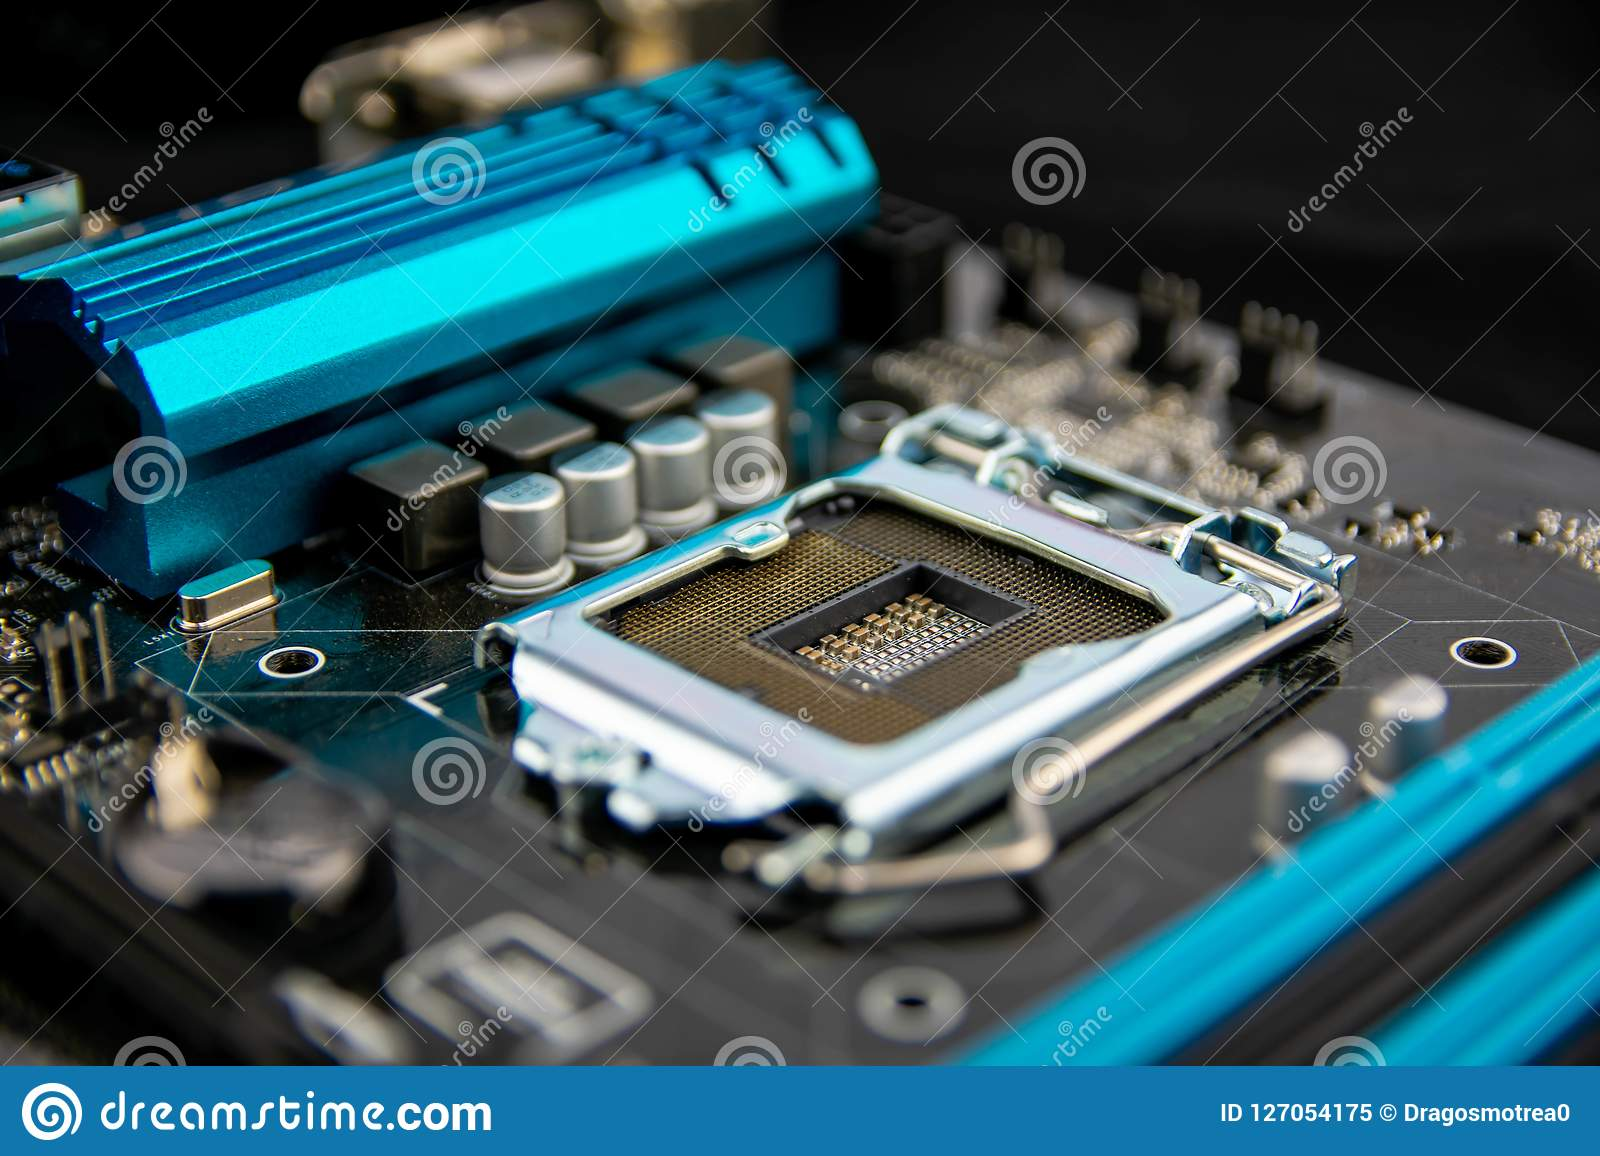 Circuit board. Electronic computer hardware technology.Motherboard digital chip .Modern Technology background. Motherboard for pro